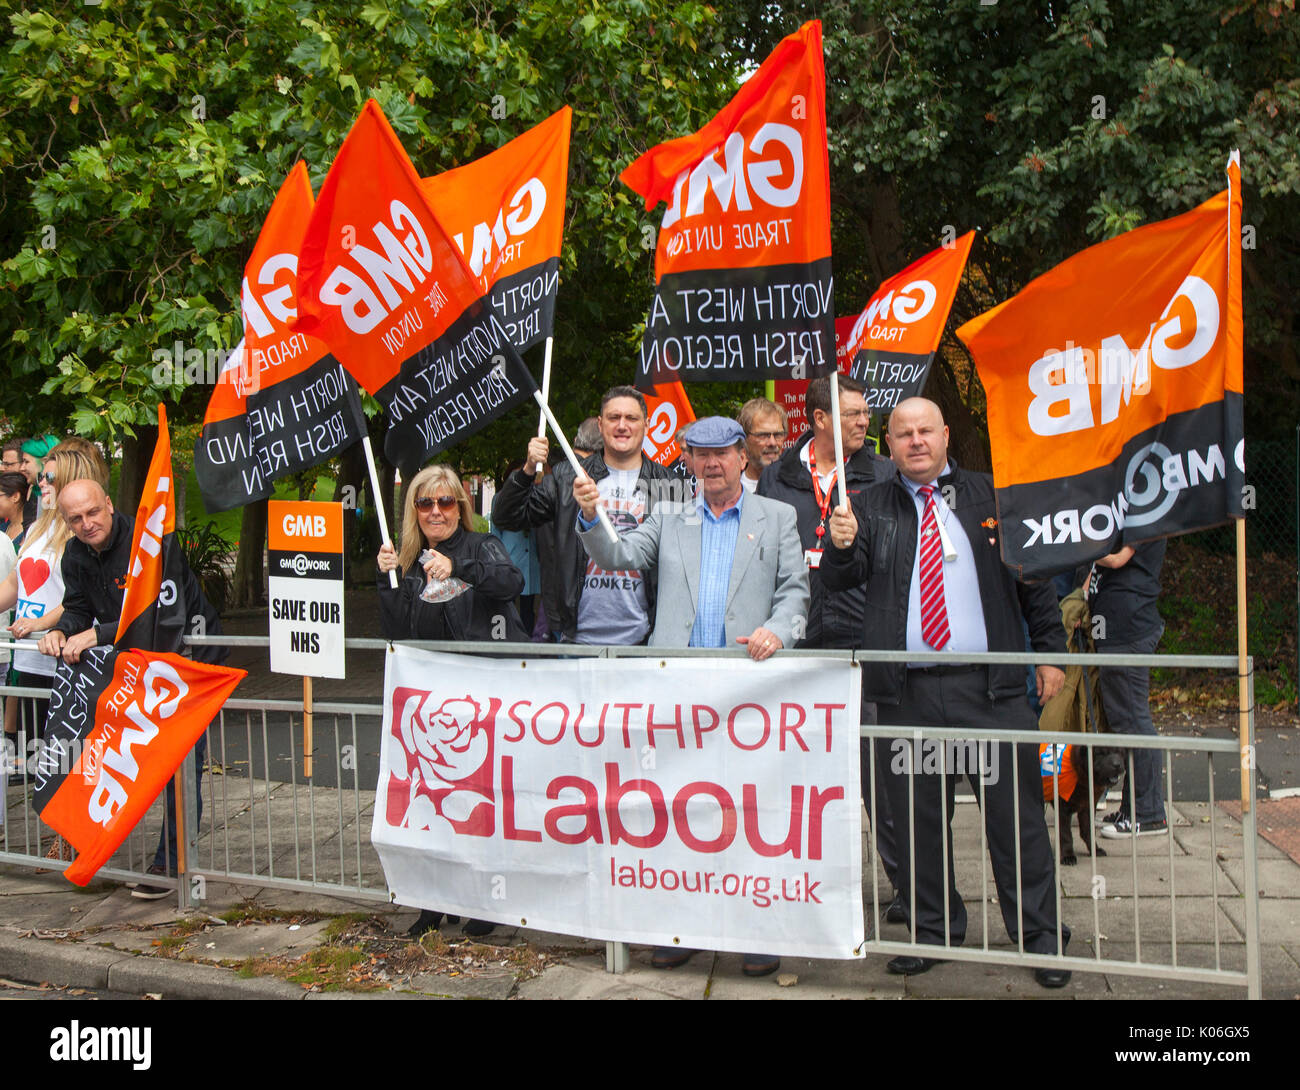 """Southport, Lancashire, UK. 22nd Aug, 2017. GMB protests against NHS cuts outside Southport and Formby NHS Trust hospital as Jeremy Hunt visits on a fact finding tour. The Health Secretary has congratulated staff for """"exceptional improvement"""" made at Southport and Ormskirk. The Trust was the most improved in England between January and March for getting patients home from hospital. GMB, the union for health and care workers, demands the Government marks International Nurses Day to end the 'cruel' public sector pay cap. Credit; MediaWorldImages/AlamyLiveNews. - Stock Image"""